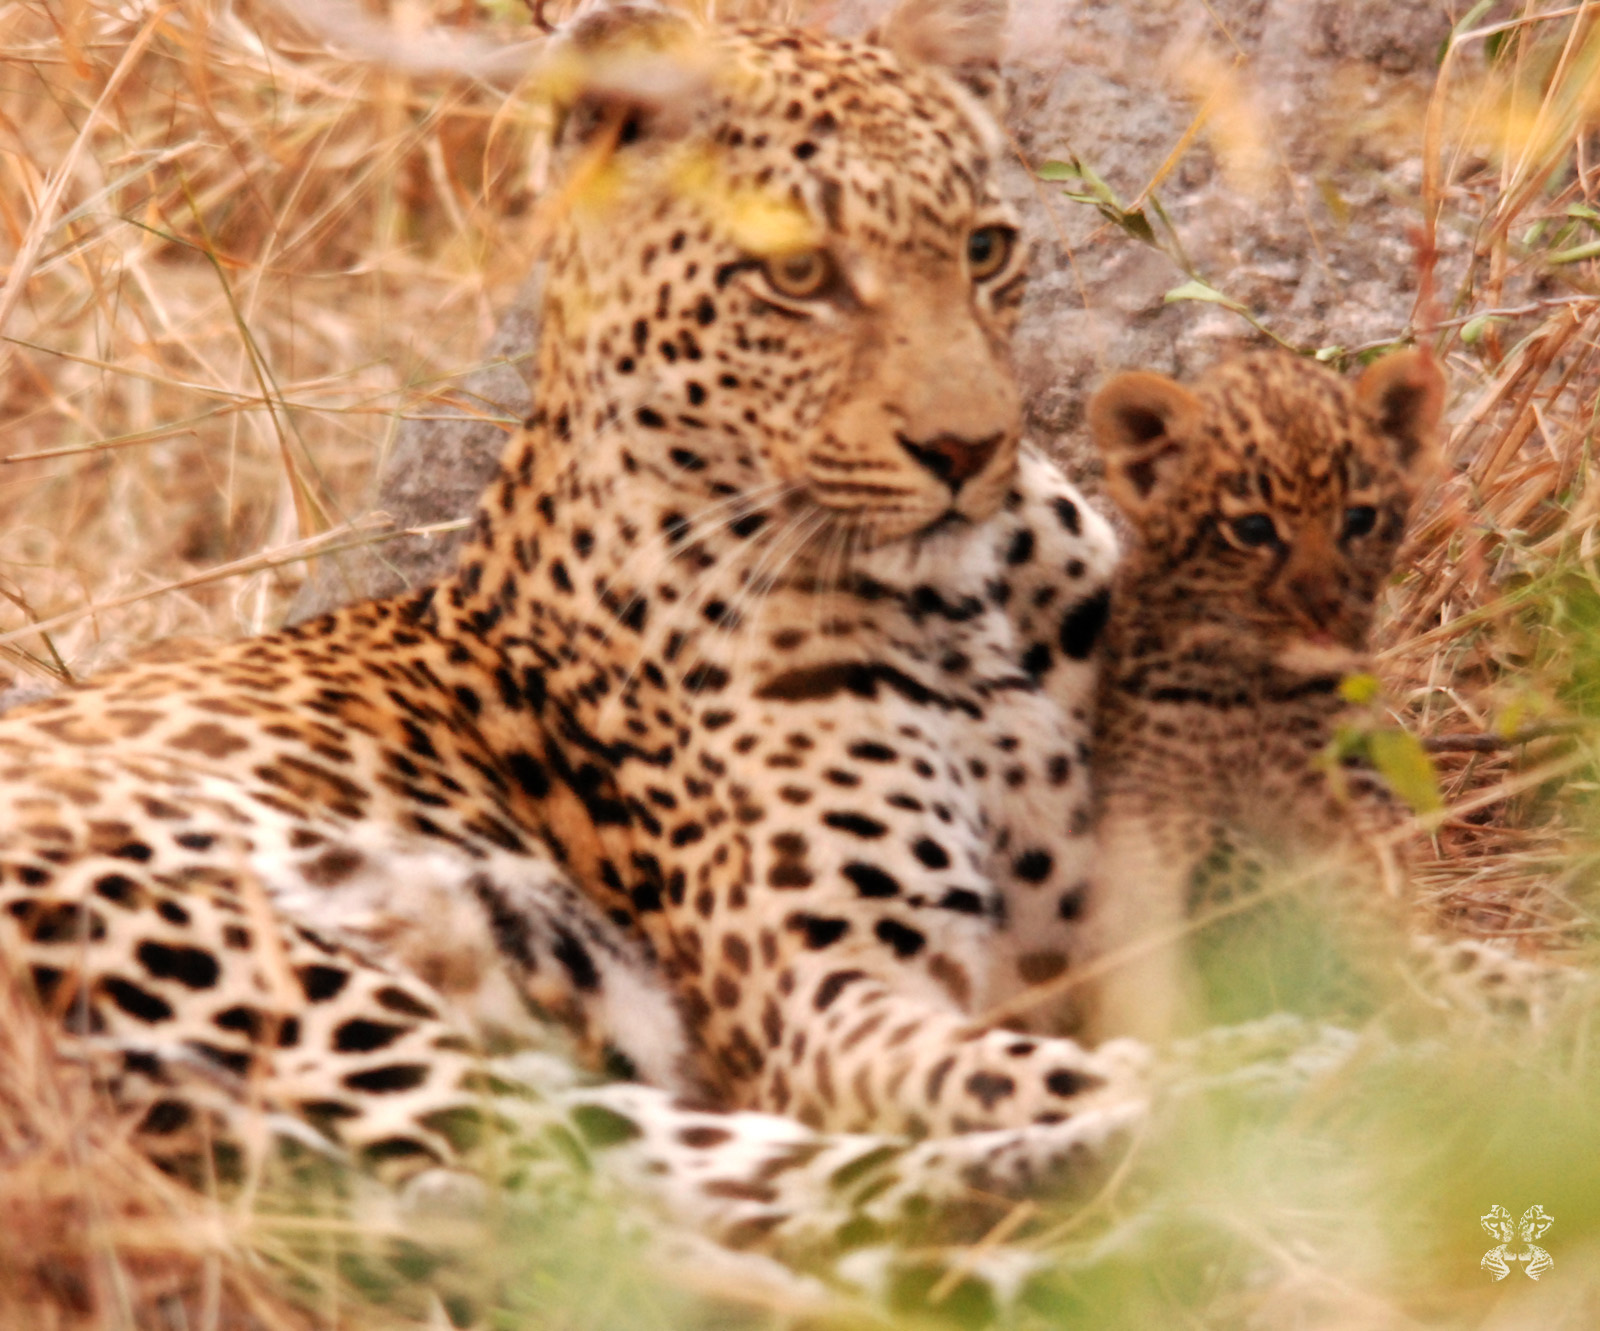 The Dudley Riverbank Female and one of her 3 week old cubs